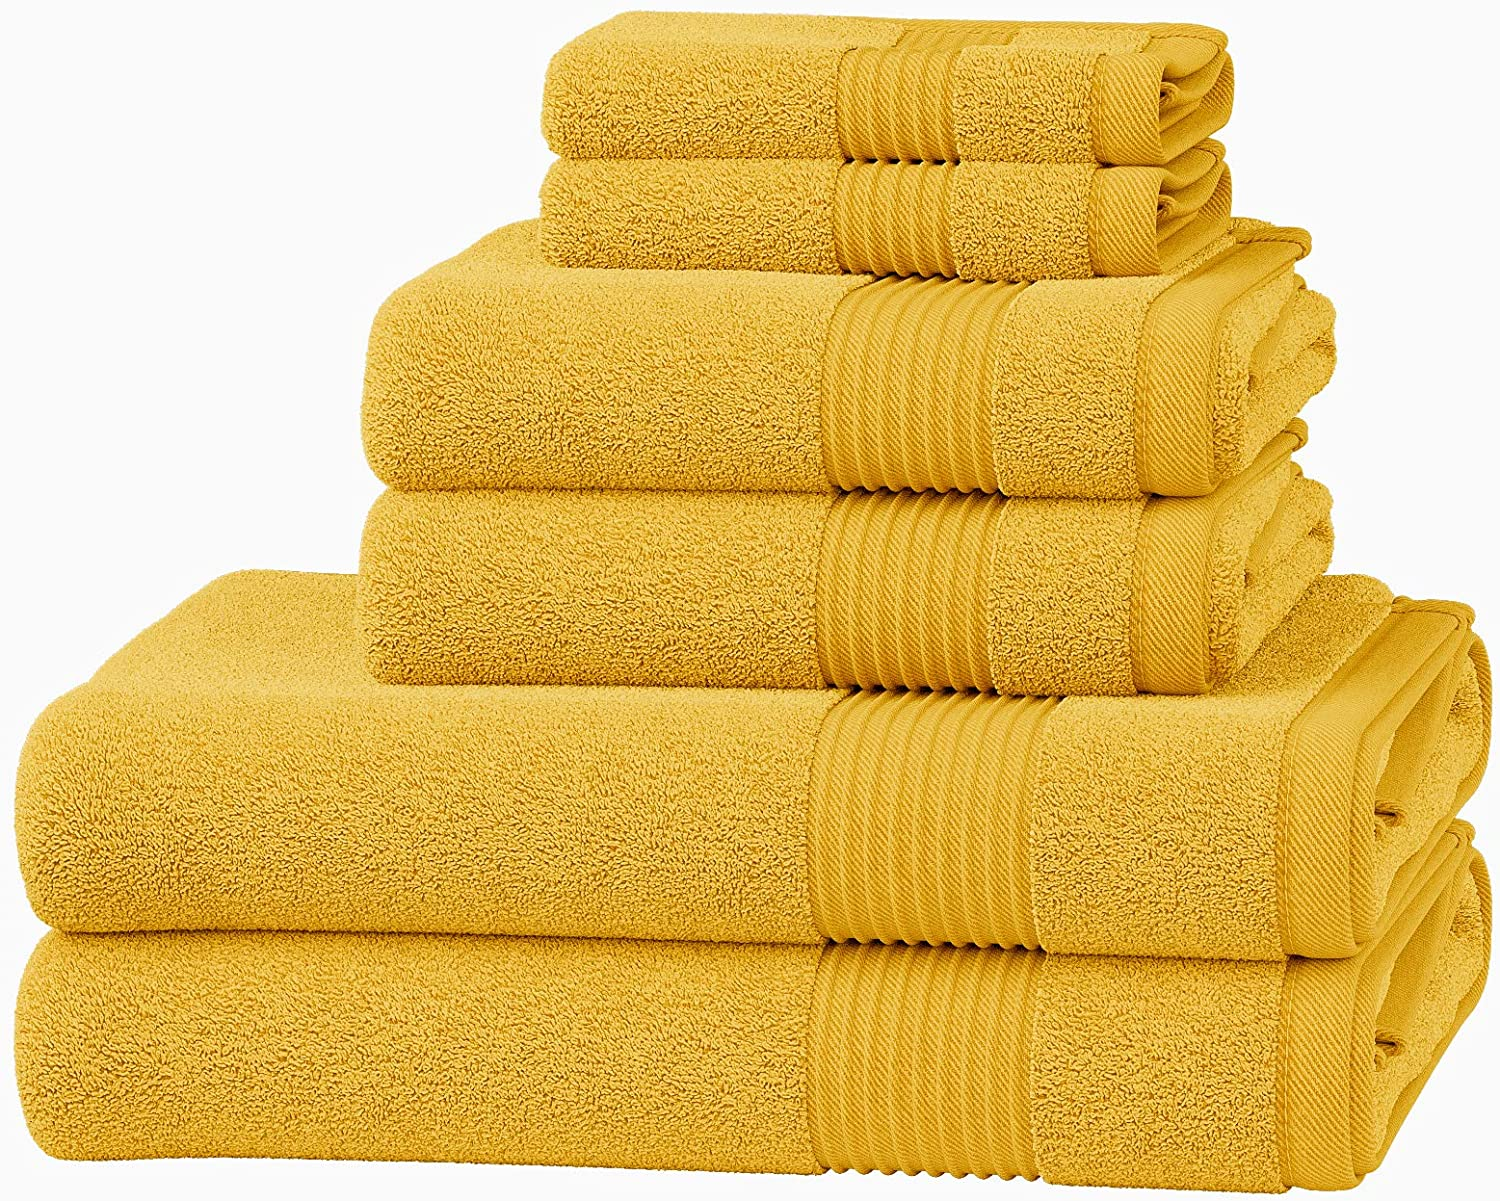 Luxury Towels Set Bale Egyptian Cotton 100/% Bath Sheet Hand Large 600 GSM Soft